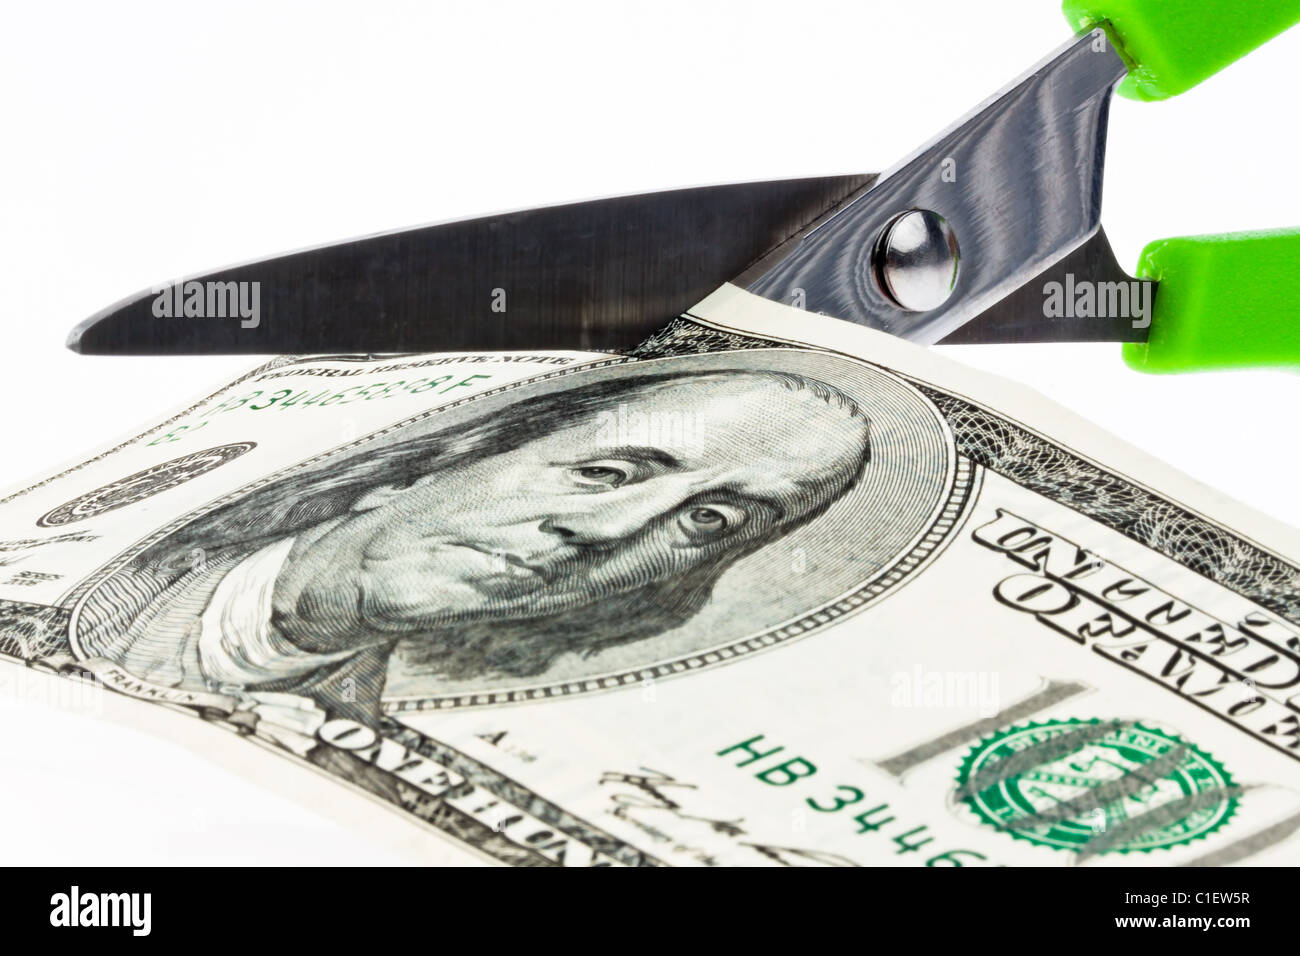 U.S. dollar bills and scissors - Stock Image